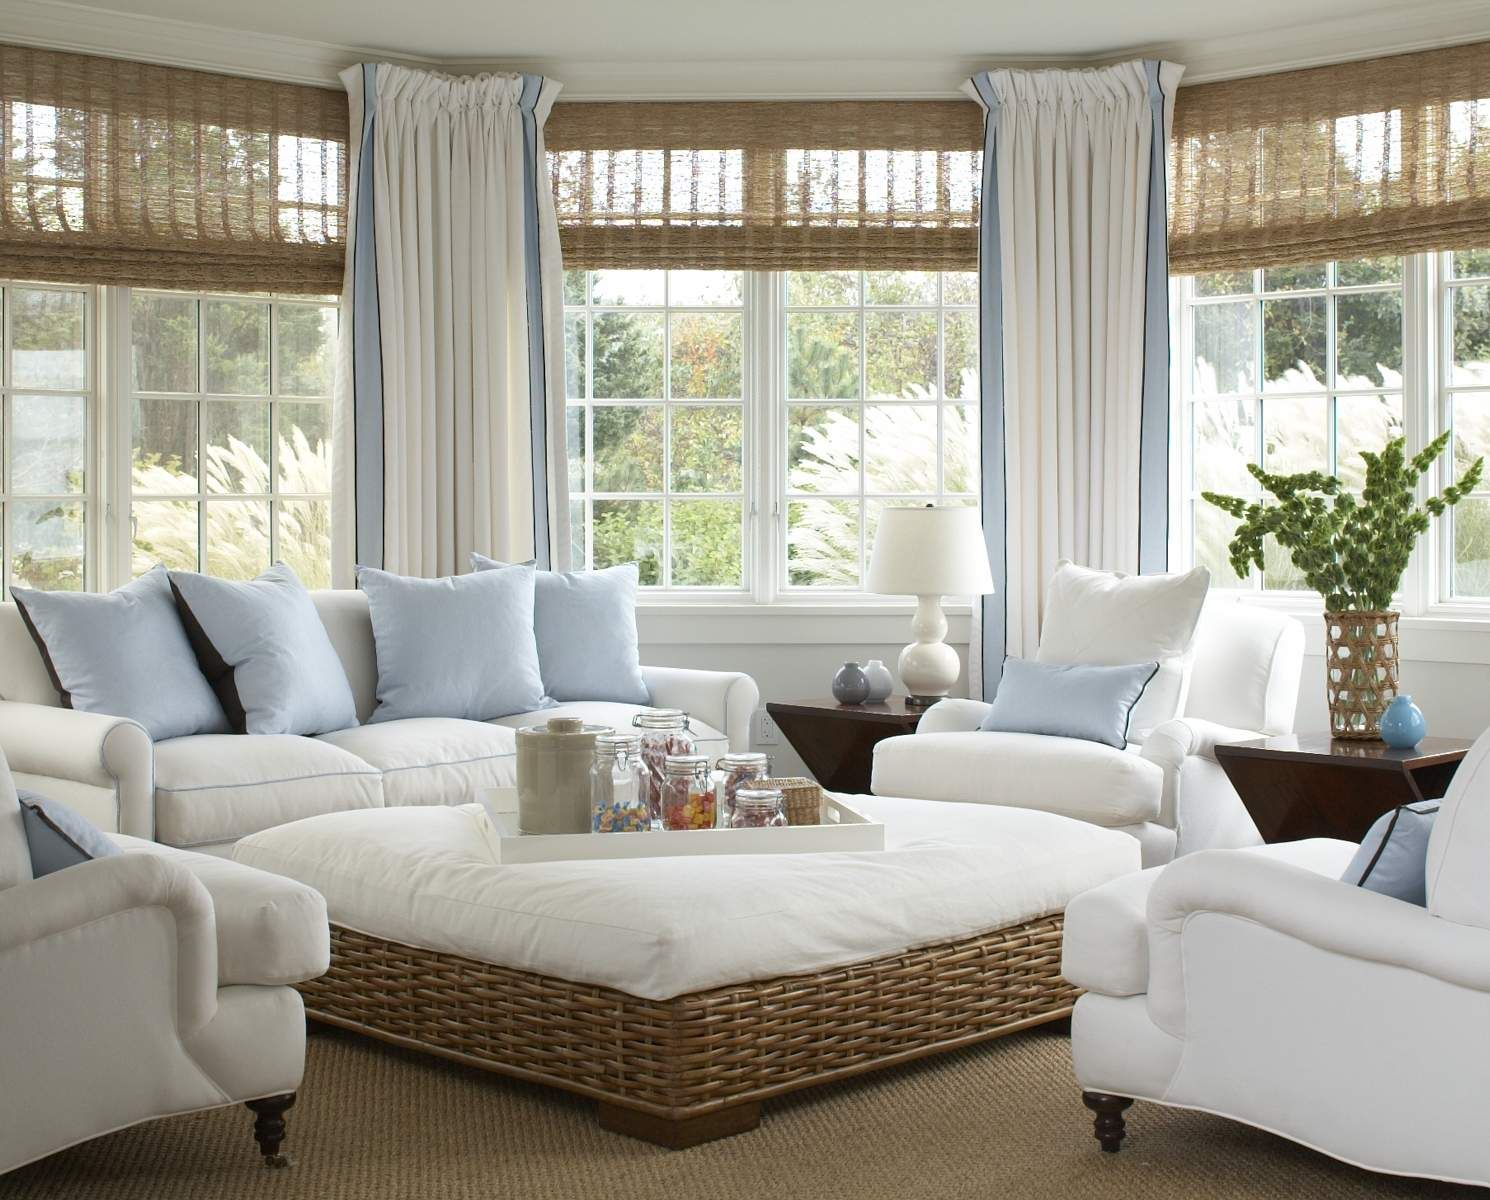 Sunroom Ideas Designs sunroom photo gallery Style Archiveawash In White Sunroom Ideassunroom